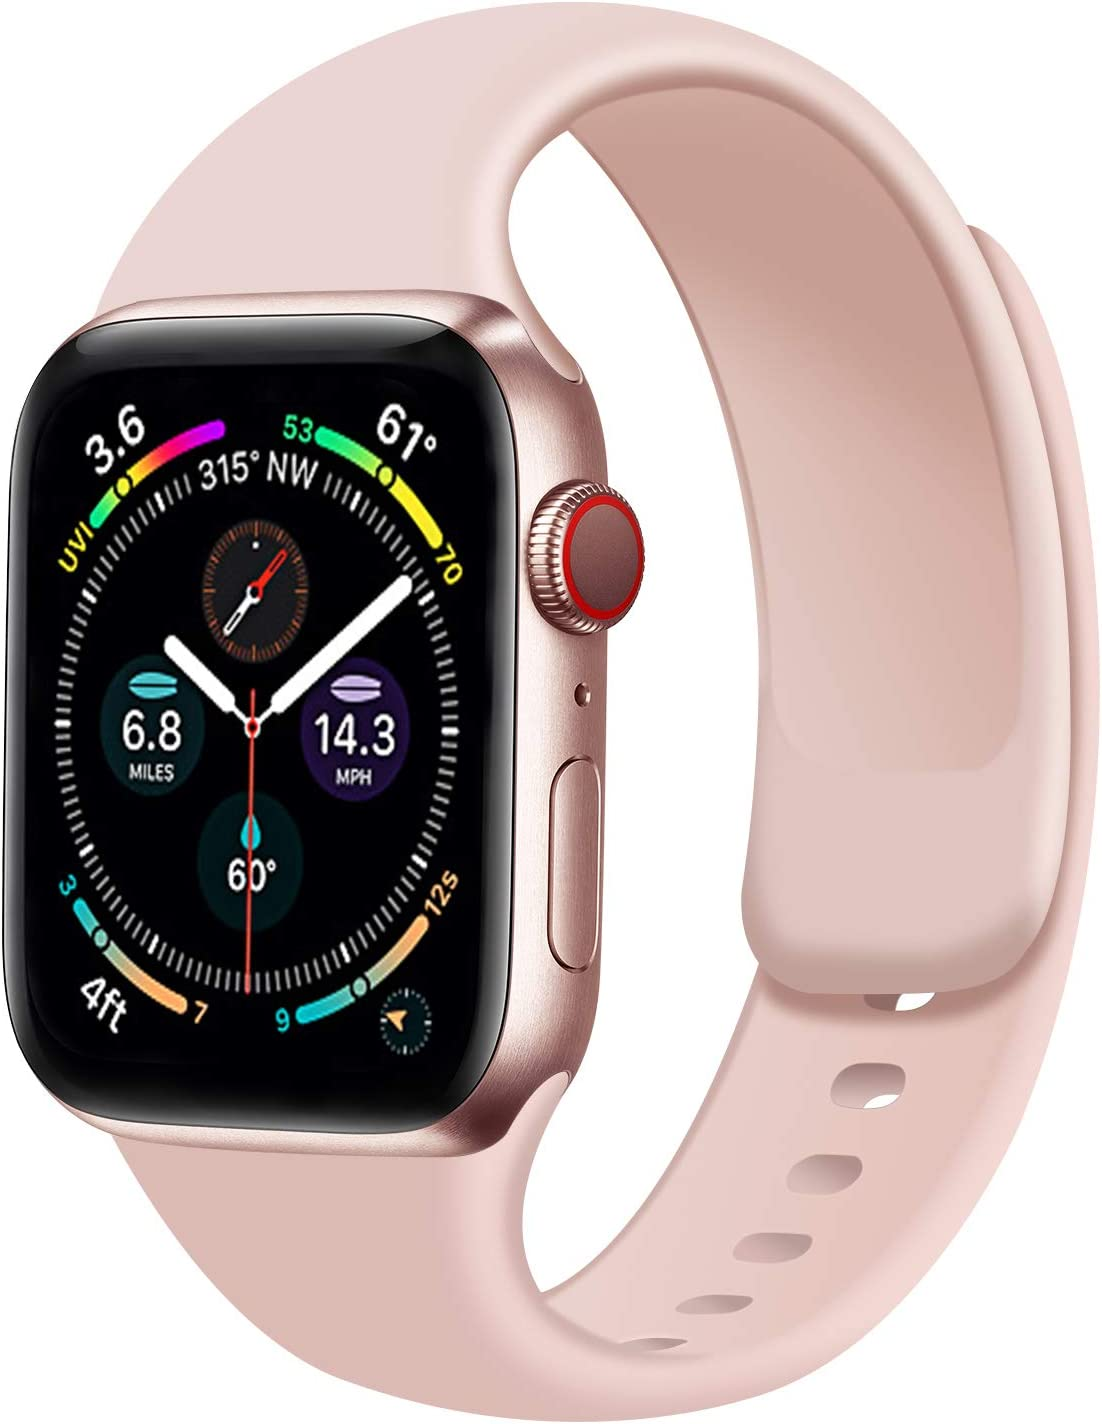 Rain gold Watch Band Compatible with Apple Watch 38mm 40mm 42mm 44mm,Soft Silicone Sport Replacement Strap Compatible for iWatch Series SE 6 5 4 3 2 1